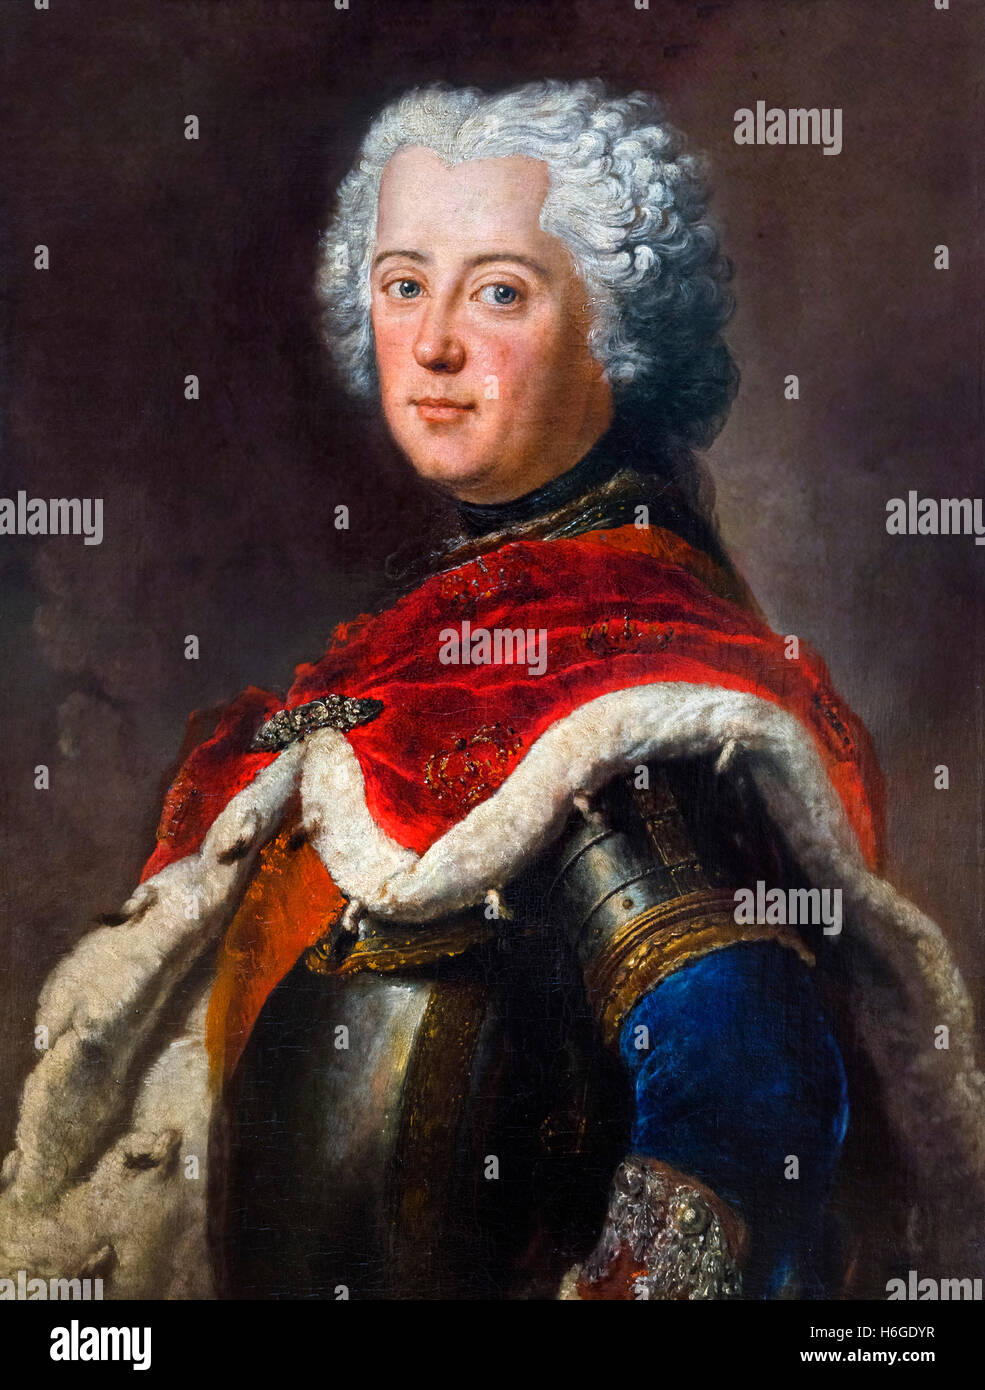 Frederick the Great (Friedrich der Große:1712-1786) as Crown Prince. Portrait by Antoine Pesne, oil on canvas, - Stock Image